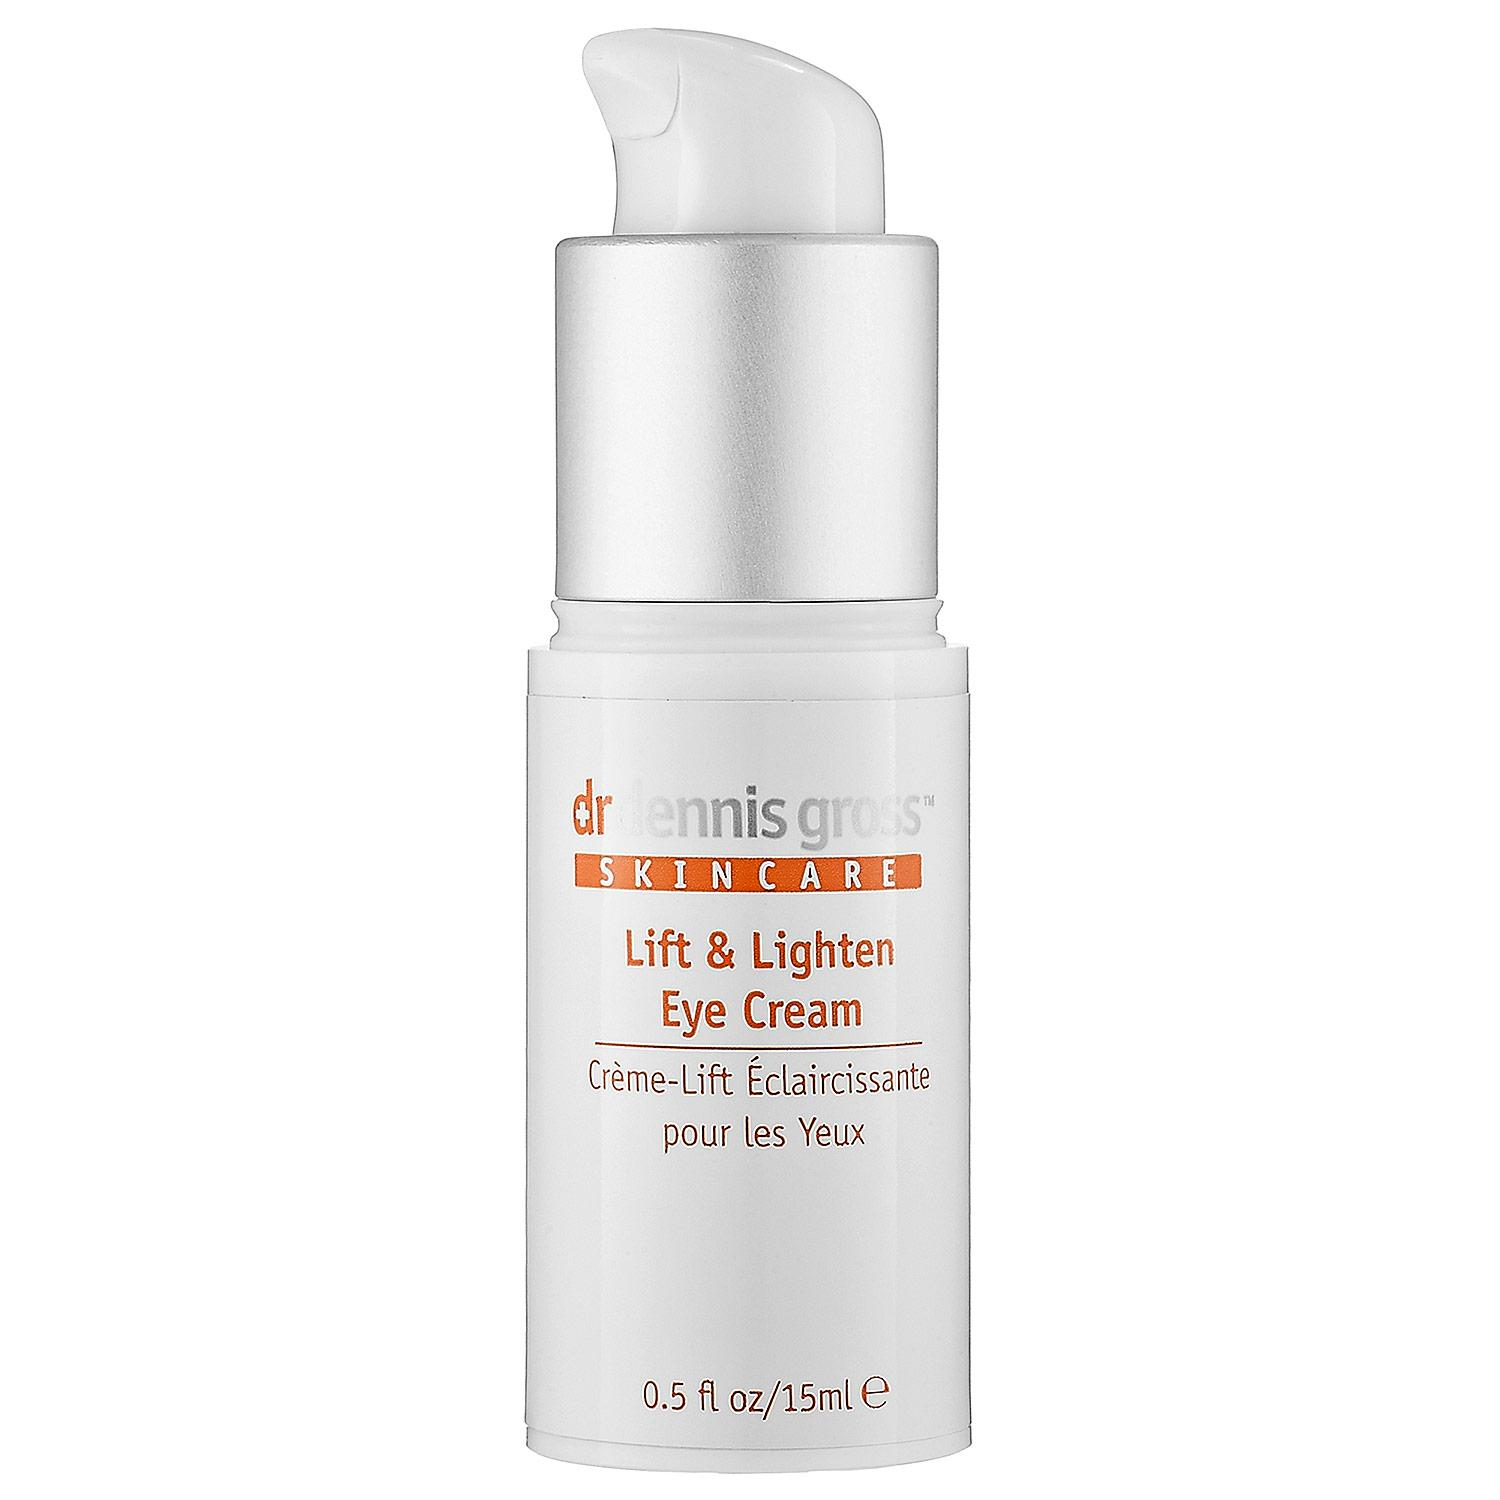 Lift & Lighten Eye Cream